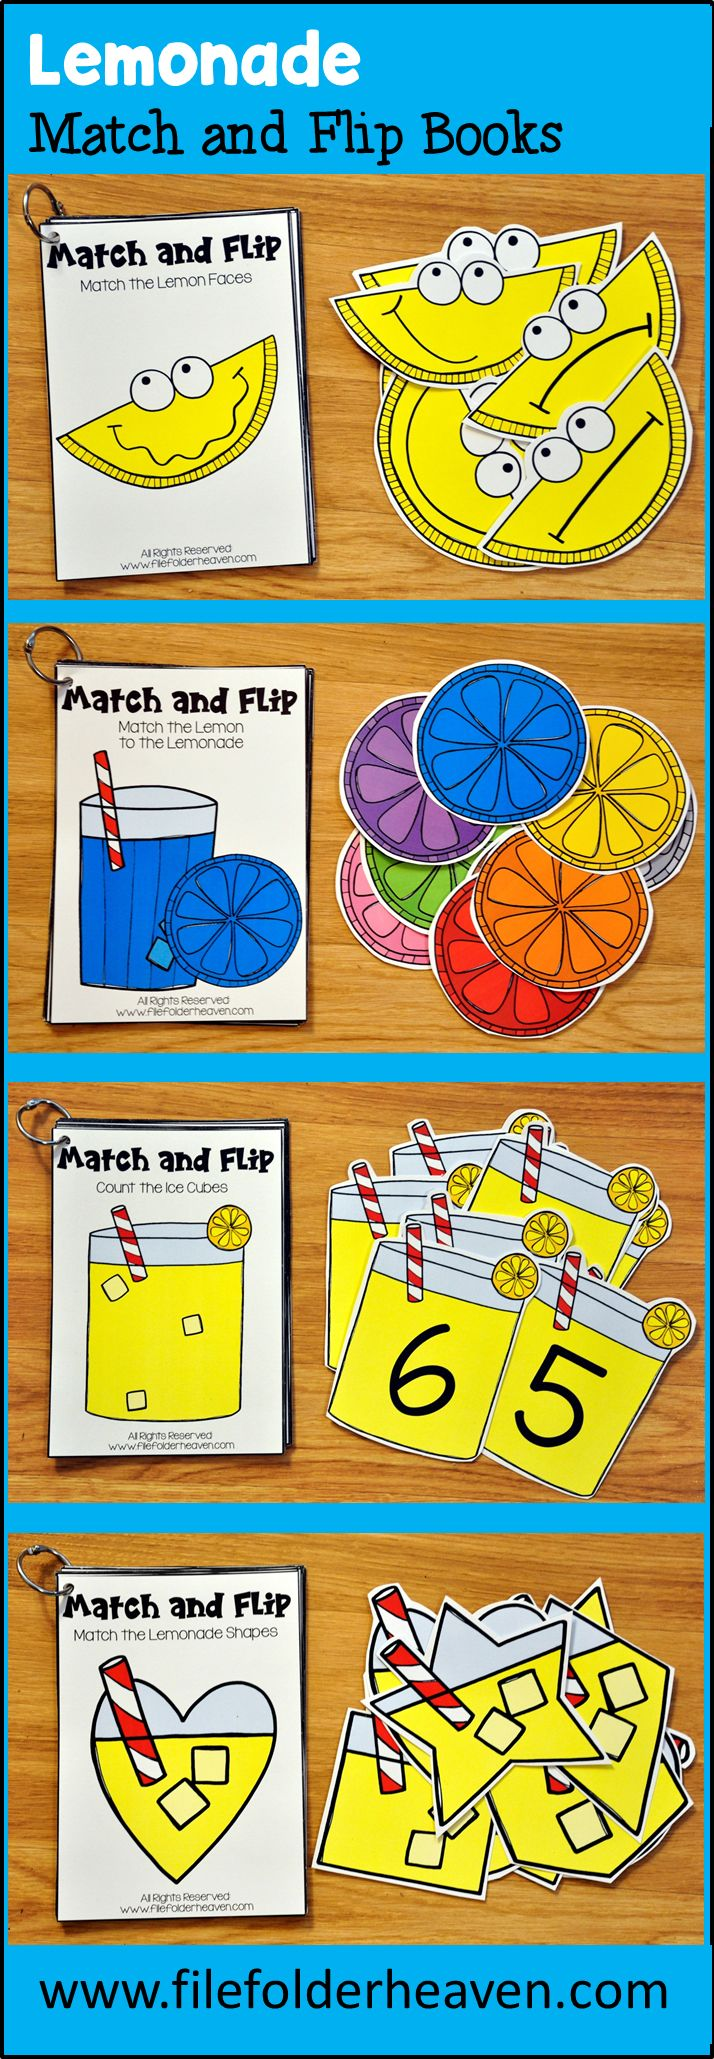 These Matching Activities: Lemonade Match and Flip Books focus on basic matching skills. In these activities, students work on matching picture to picture (or matching by emotion) matching by shape, matching by counting and matching by color. There are four Match and Flip Books included in this download.